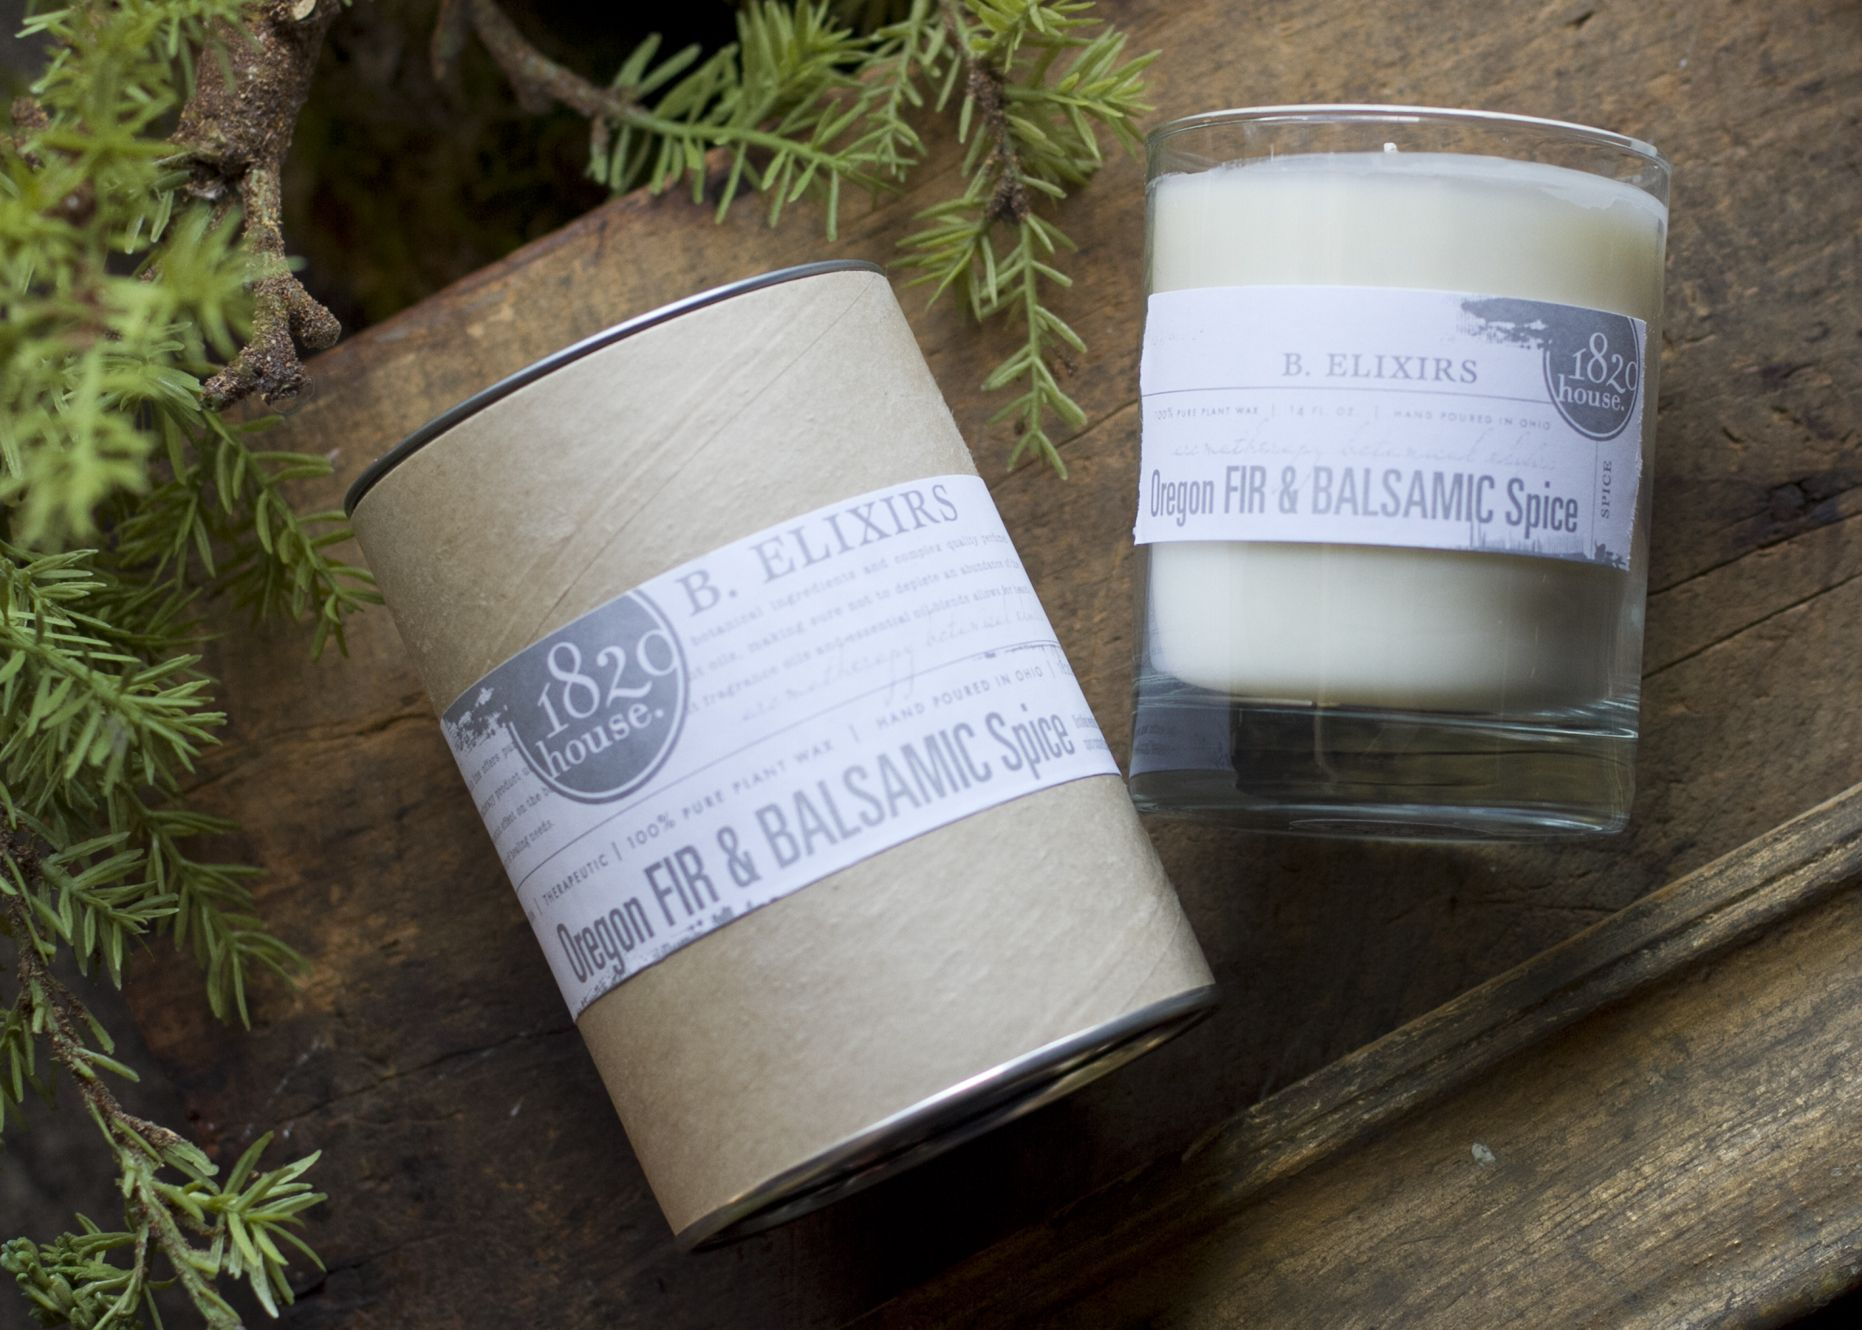 B. Elixirs for the Holiday.  1820 House Candle Co.  Aromatherapy Candle Silver Packaging Design